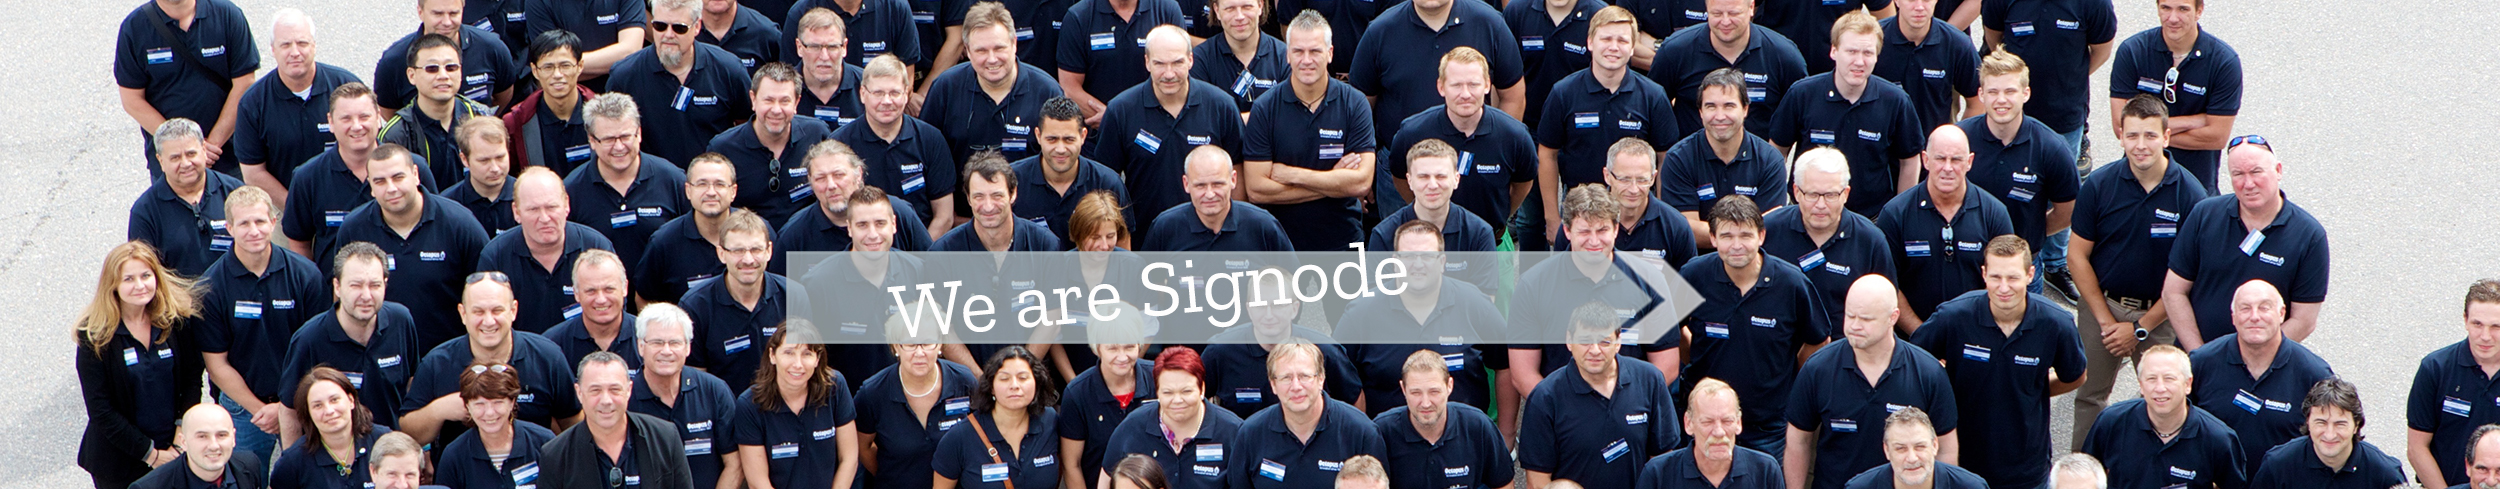 Signode people